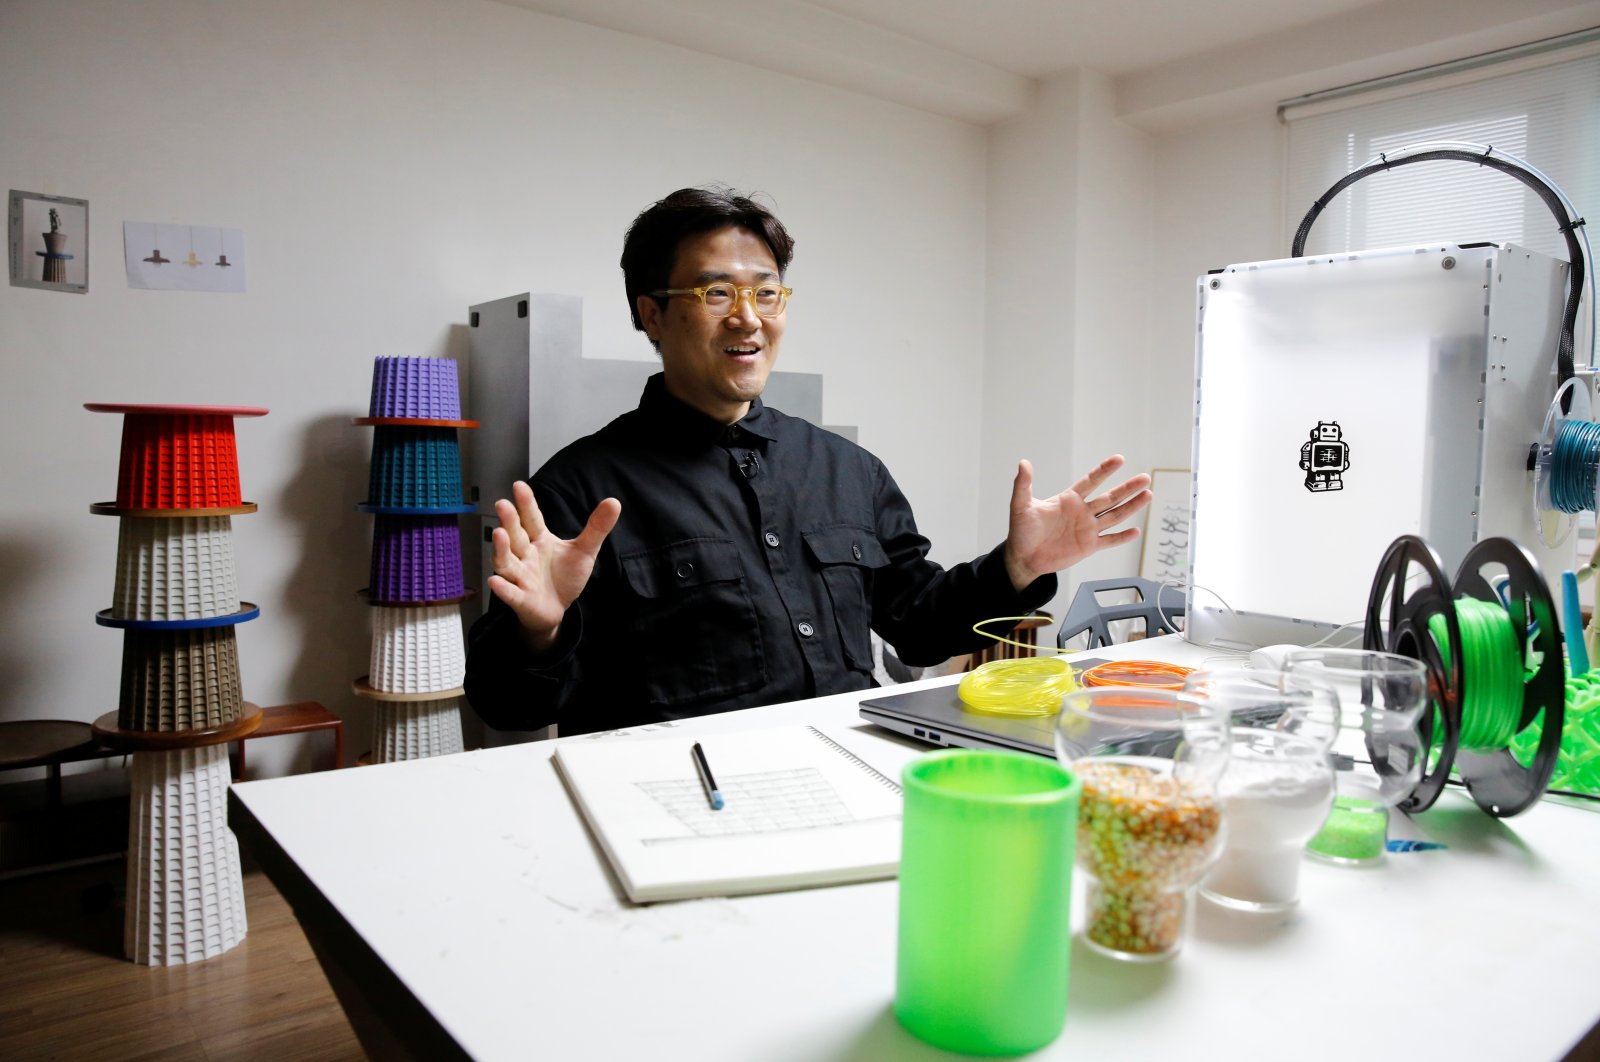 South Korean designer Ryu Jong-dae speaks to Reuters during an interview in his art studio in Seoul, South Korea, April 17, 2020. (Reuters Photo)